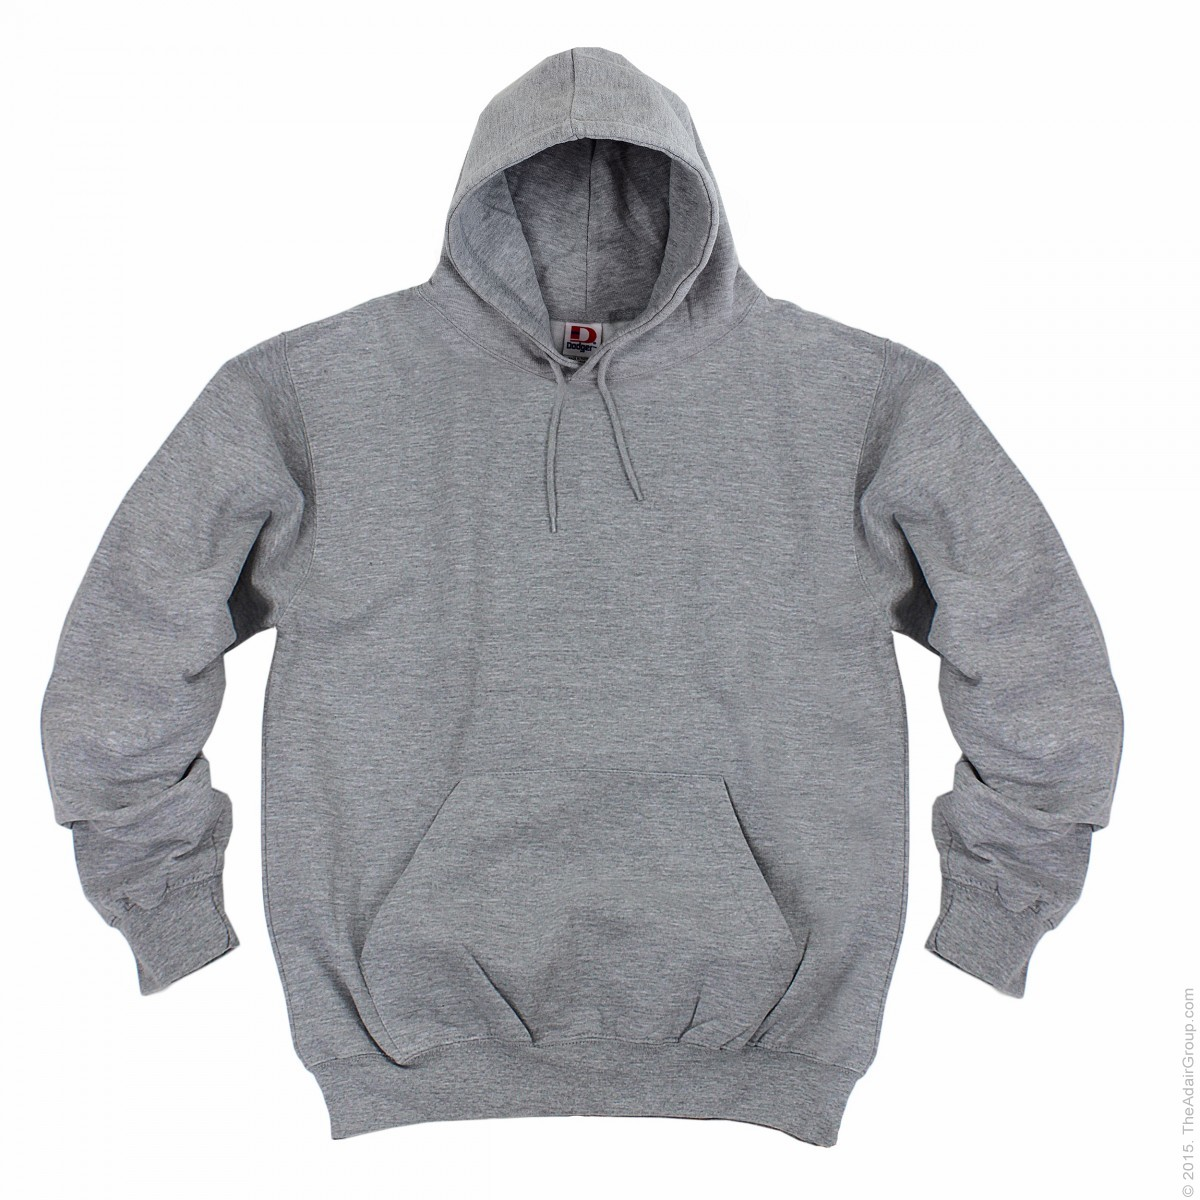 Blank Pullover Hoodies at Wholesale Prices from Adair